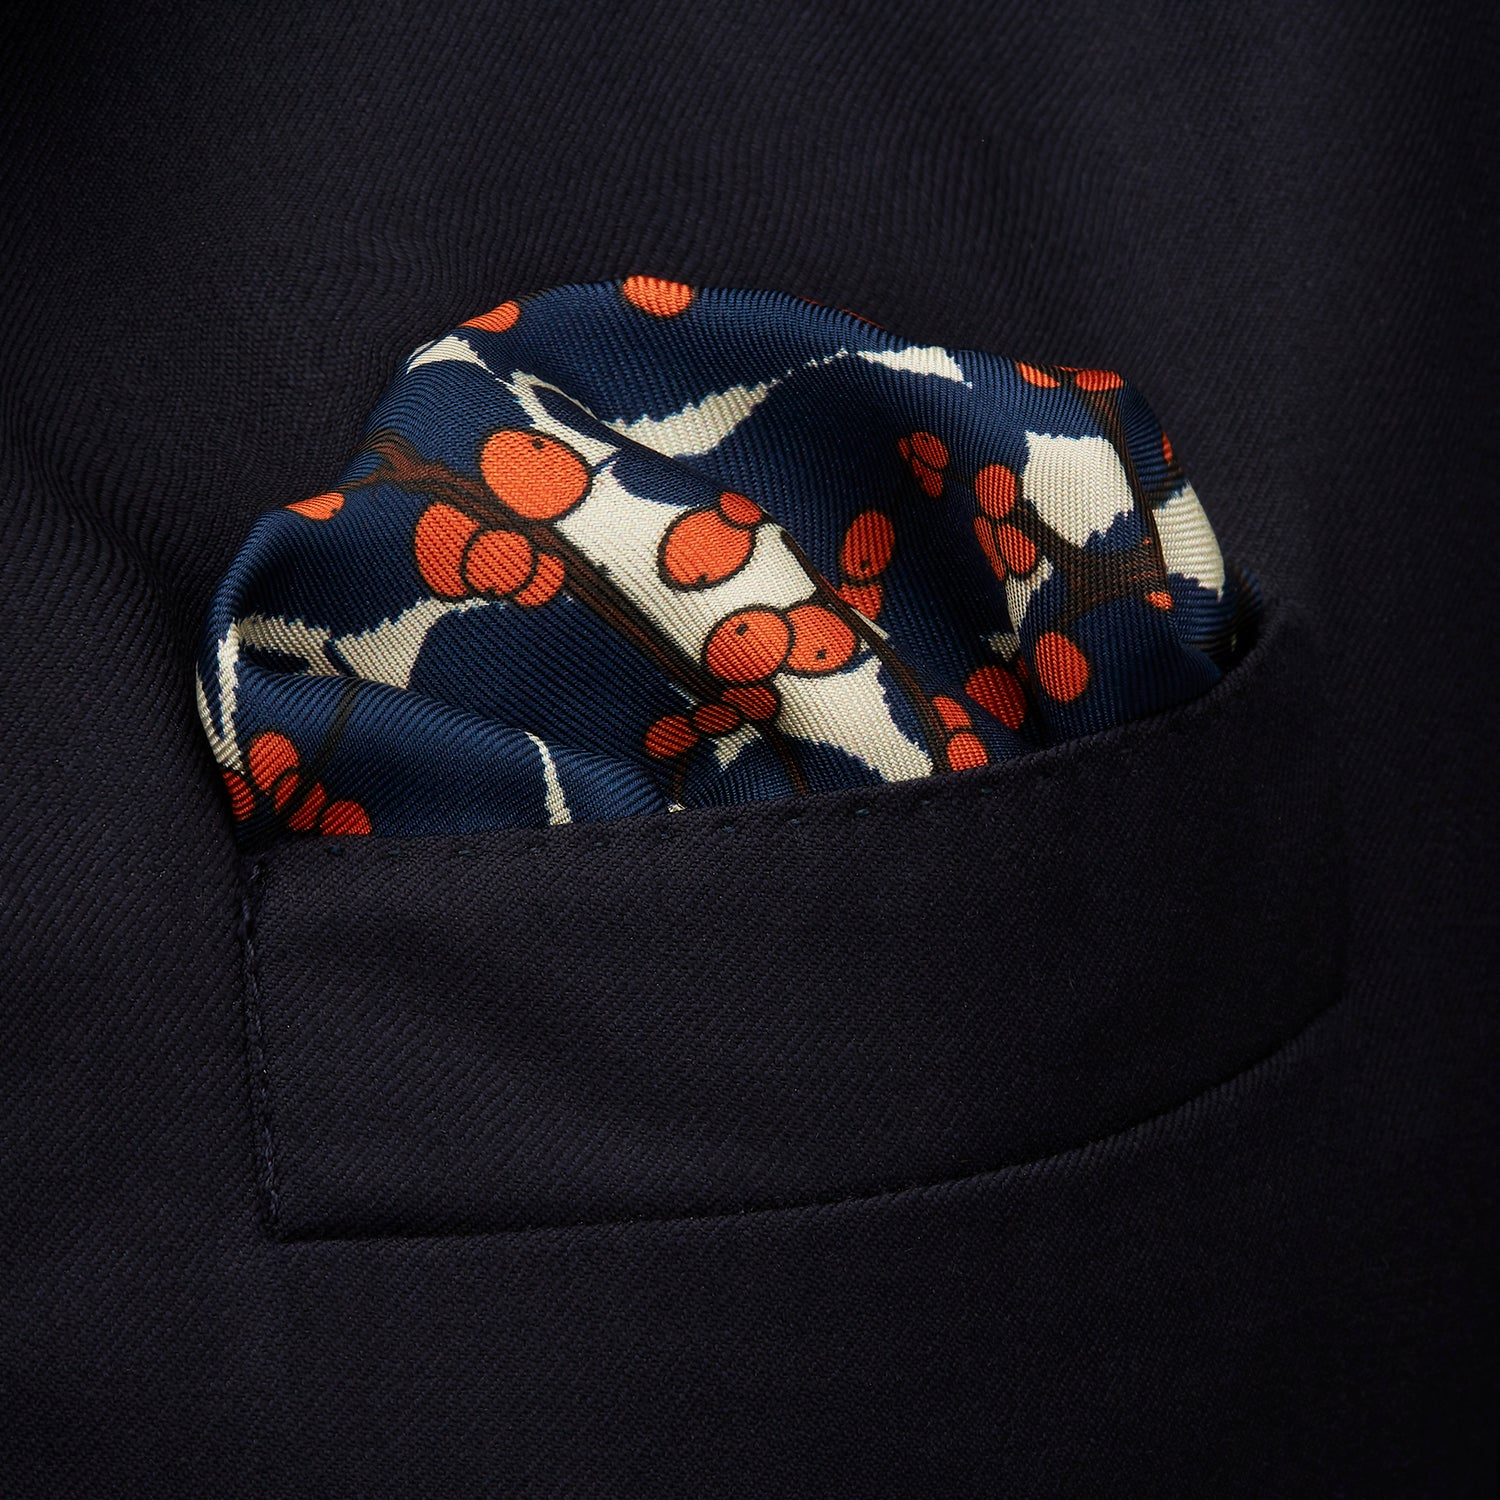 Blue Berry Floral Pocket Square